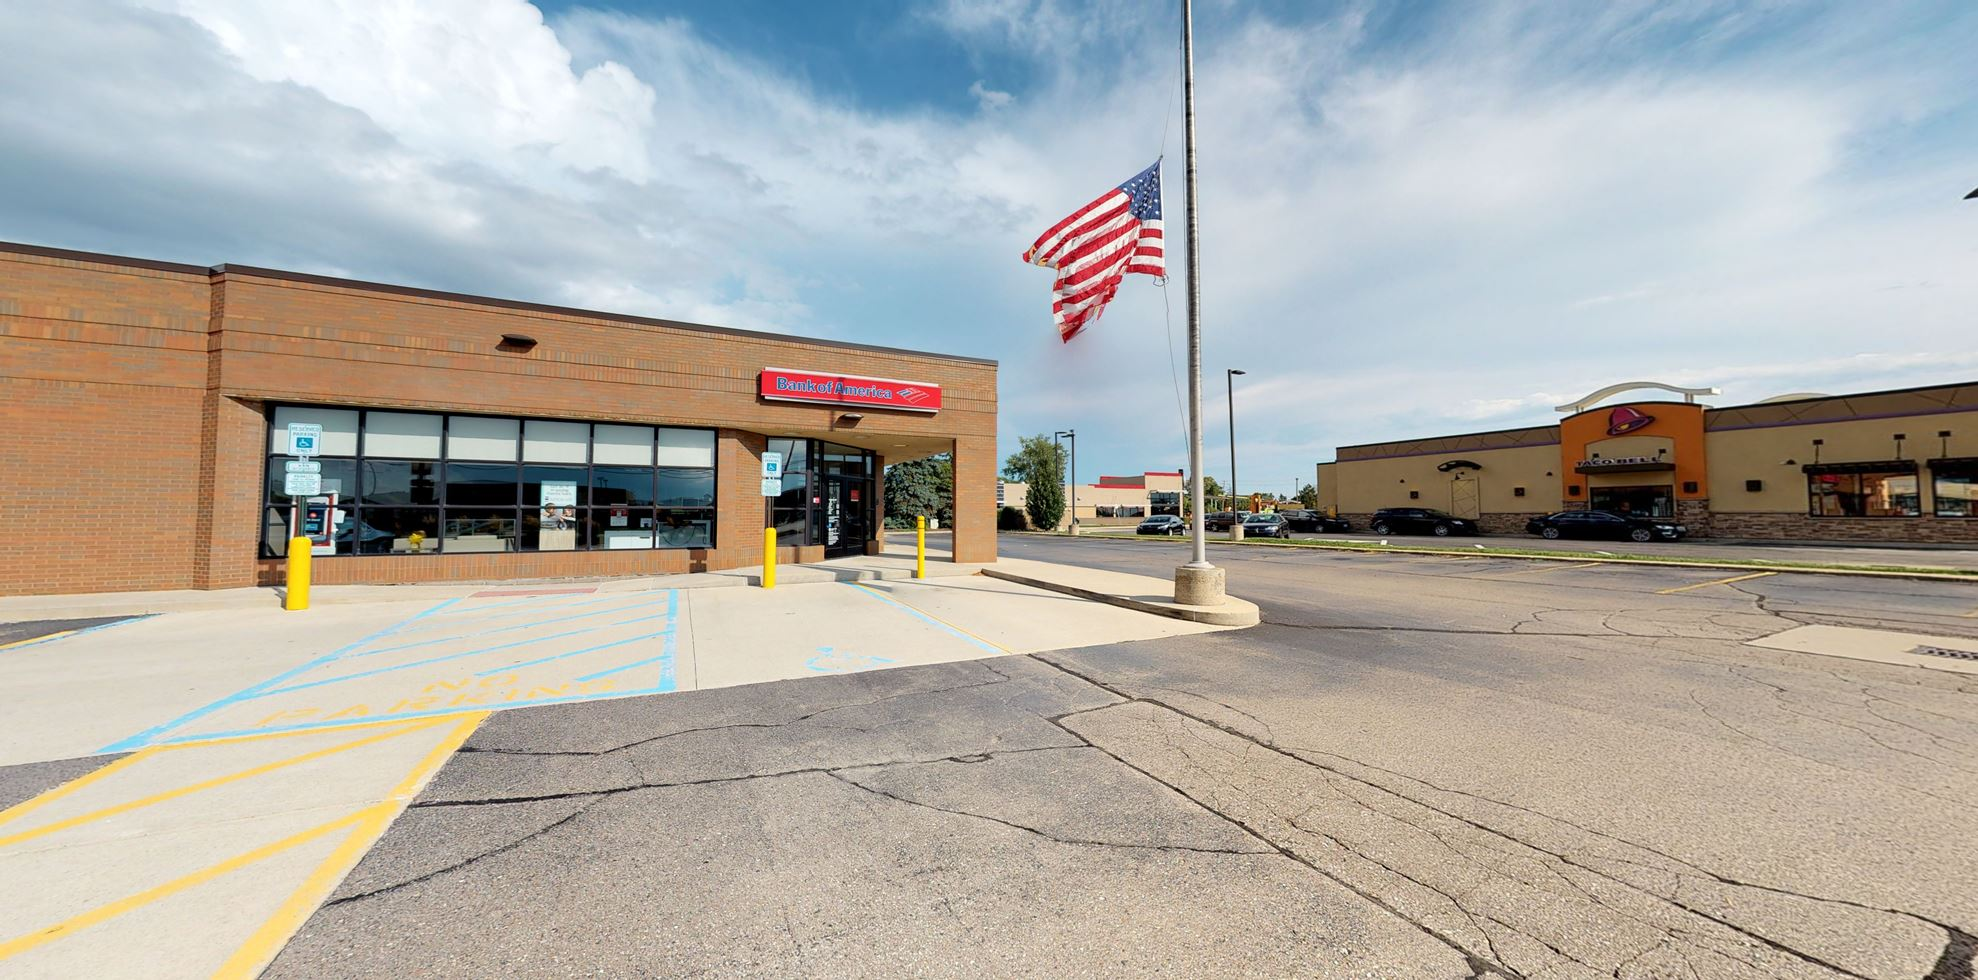 Bank of America financial center with drive-thru ATM | 45194 Romeo Plank Rd, Macomb, MI 48044